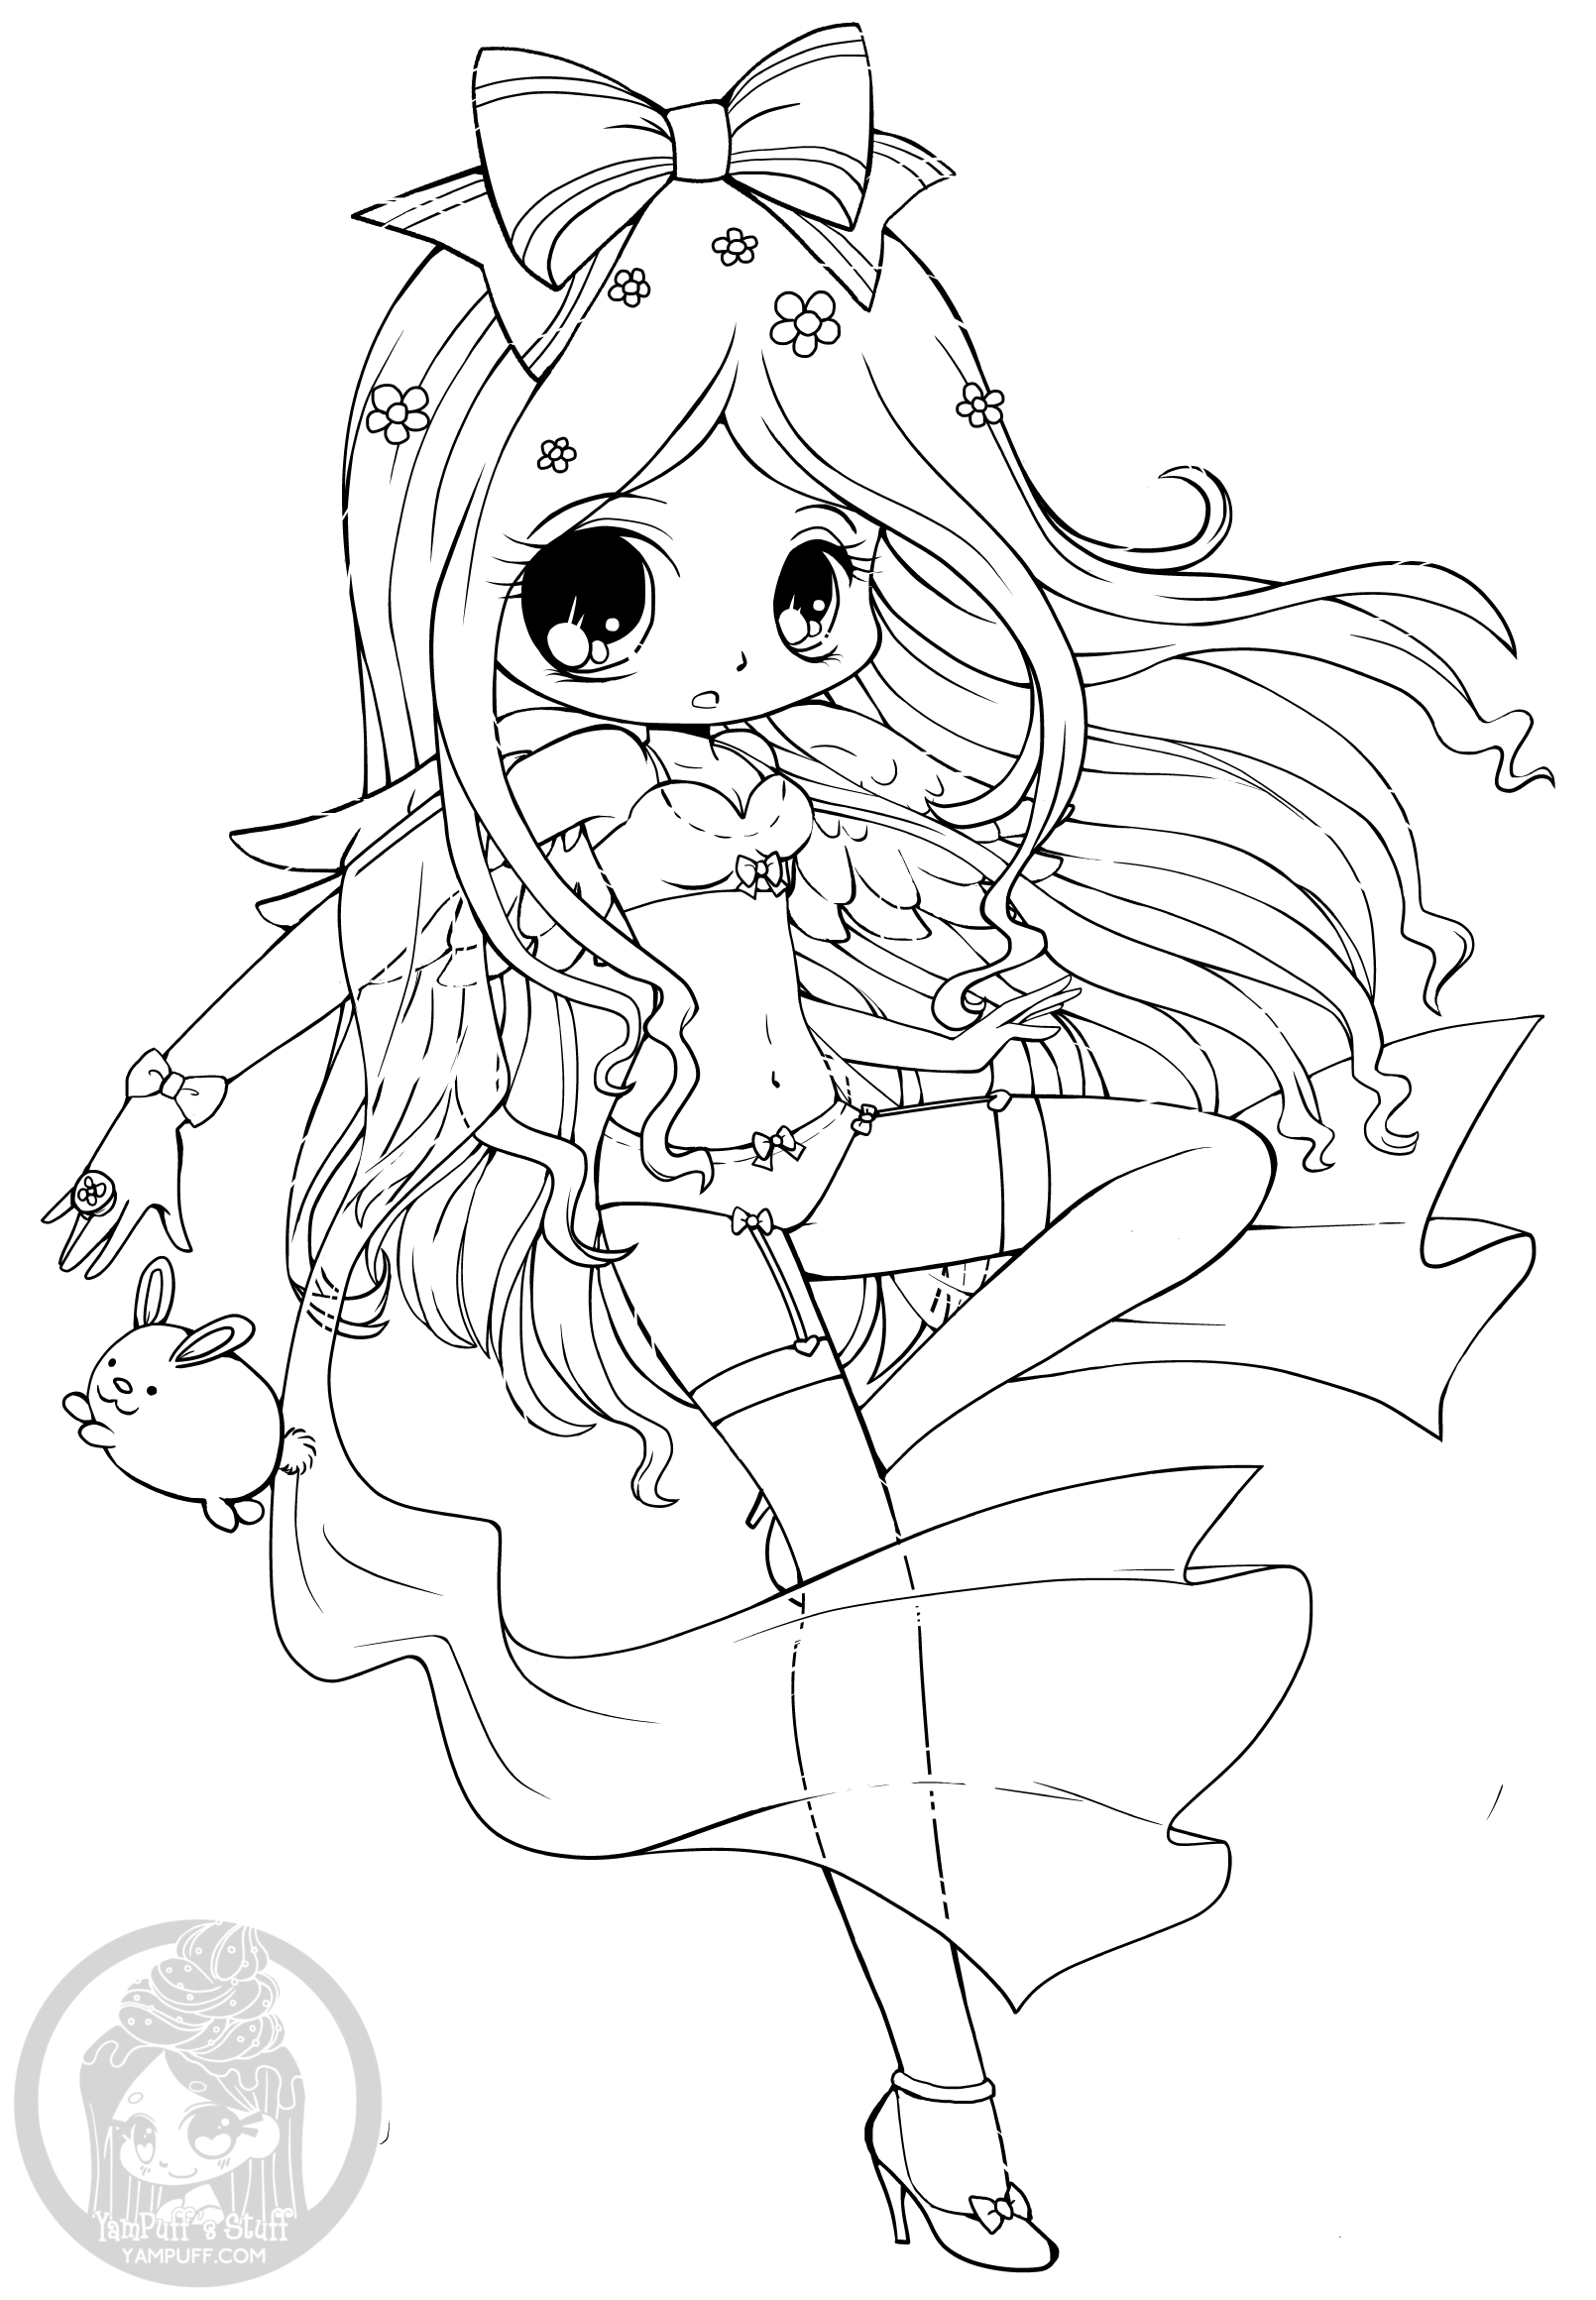 coloring pages anime chibi anime girl chibi coloring page coloring sheets pages chibi anime coloring